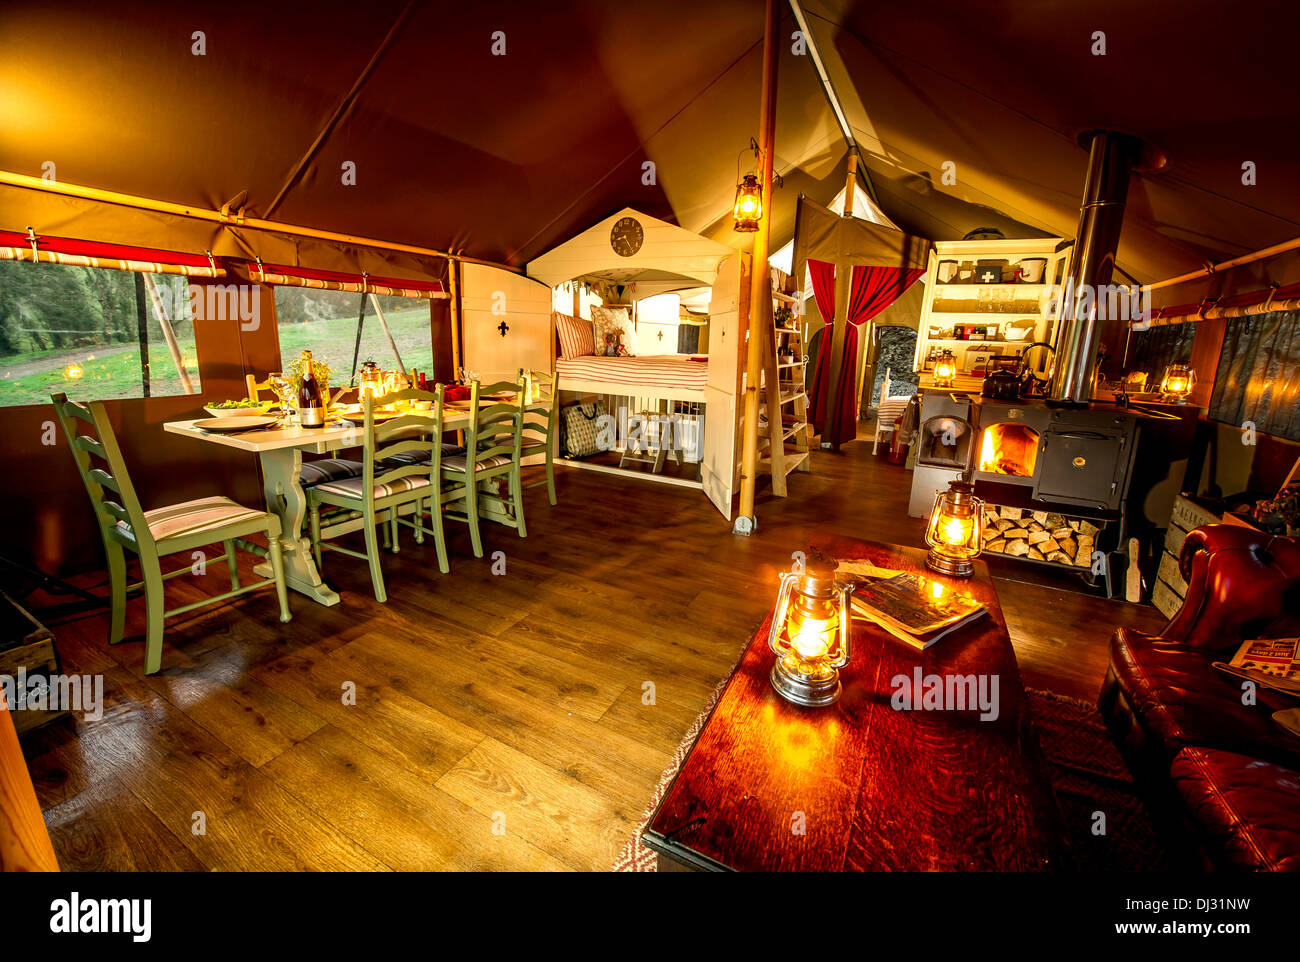 interior at night at Longlands luxury glamping lodges,  Devon UK - Stock Image